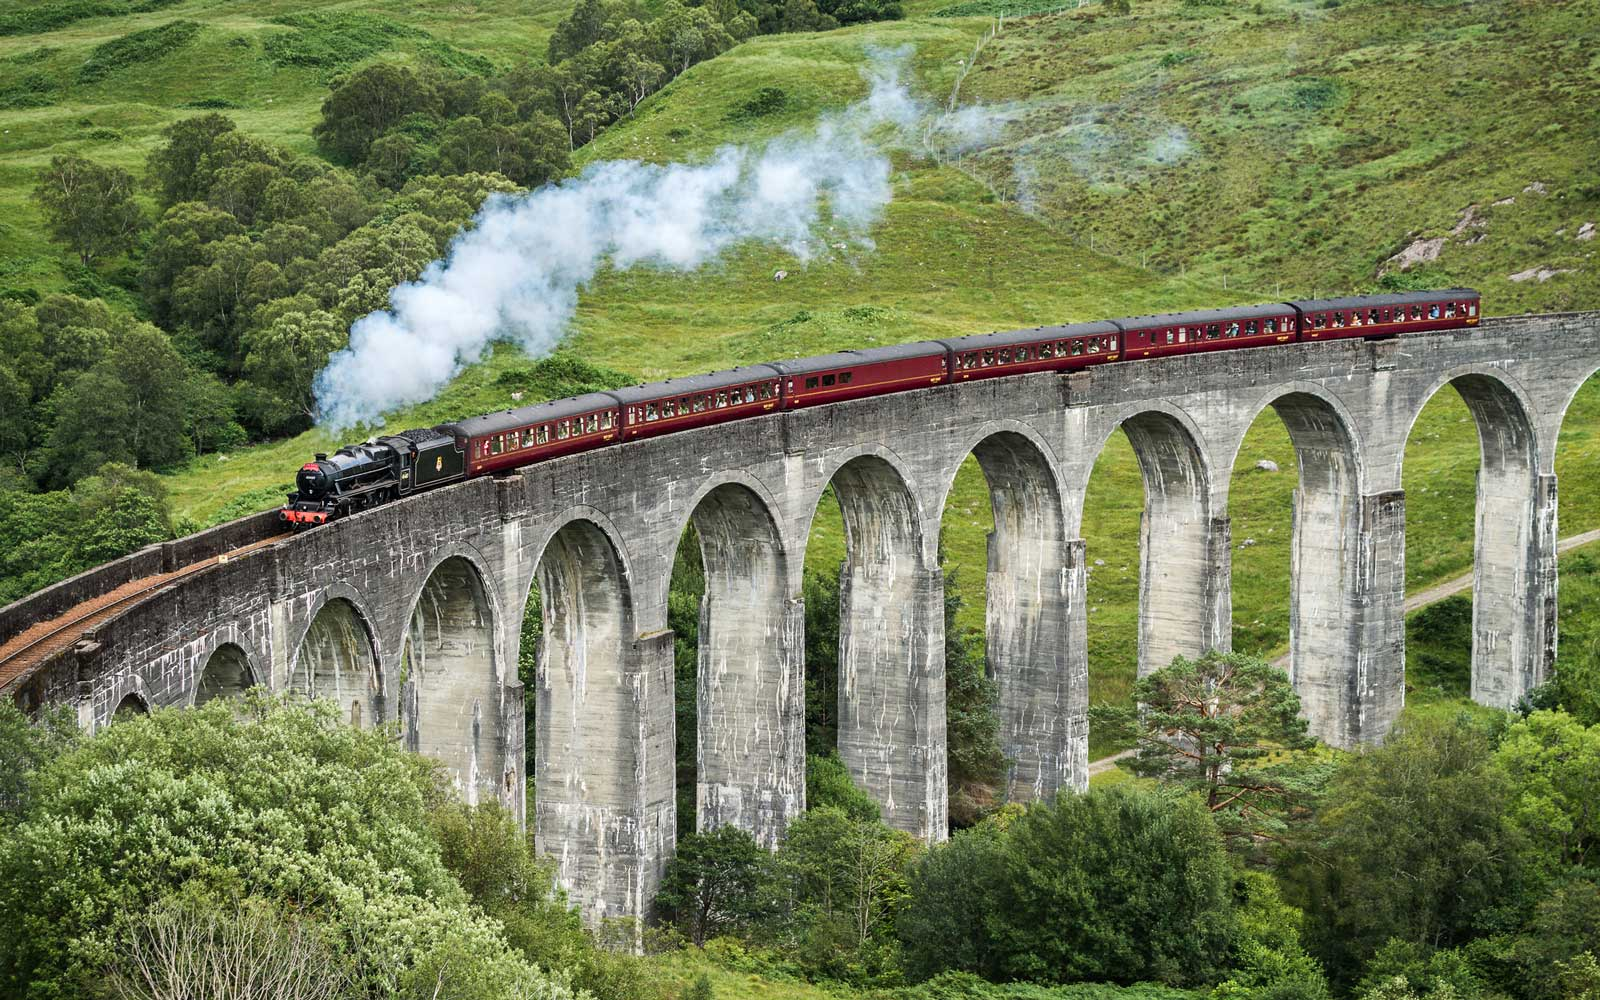 The Jacobite On Glenfinnan Viaduct AKA Hogwarts Express Train